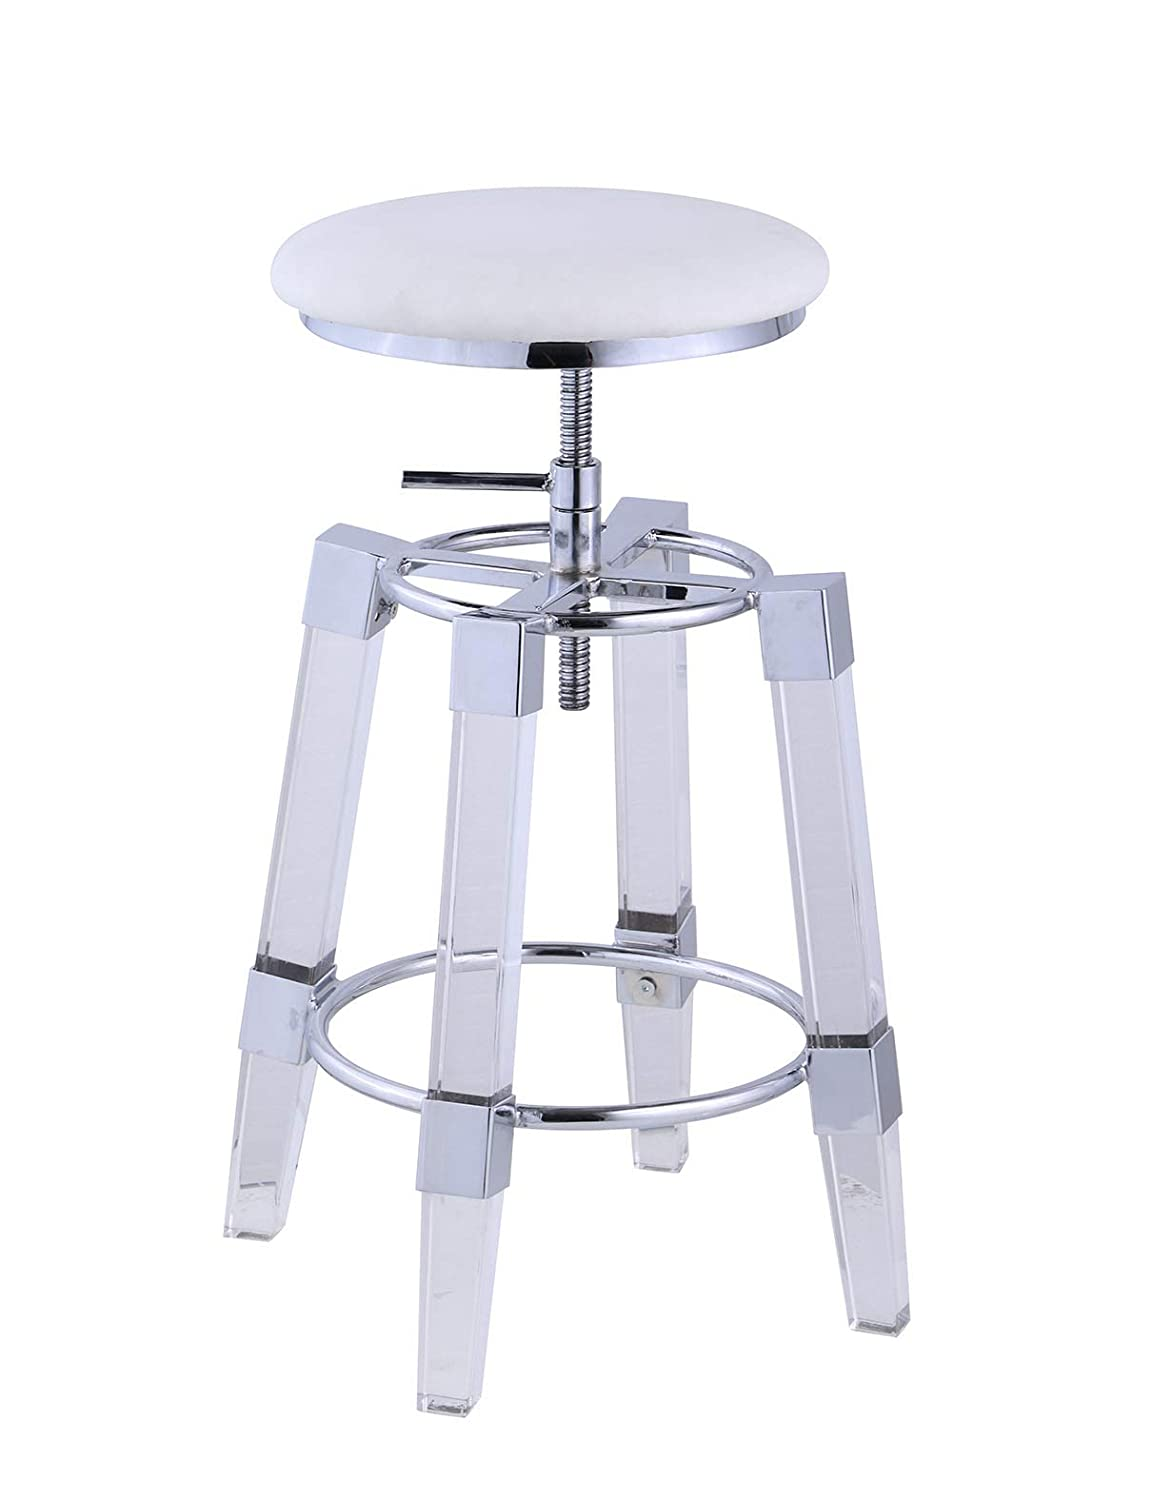 Milan 8304 Bar Stool, White